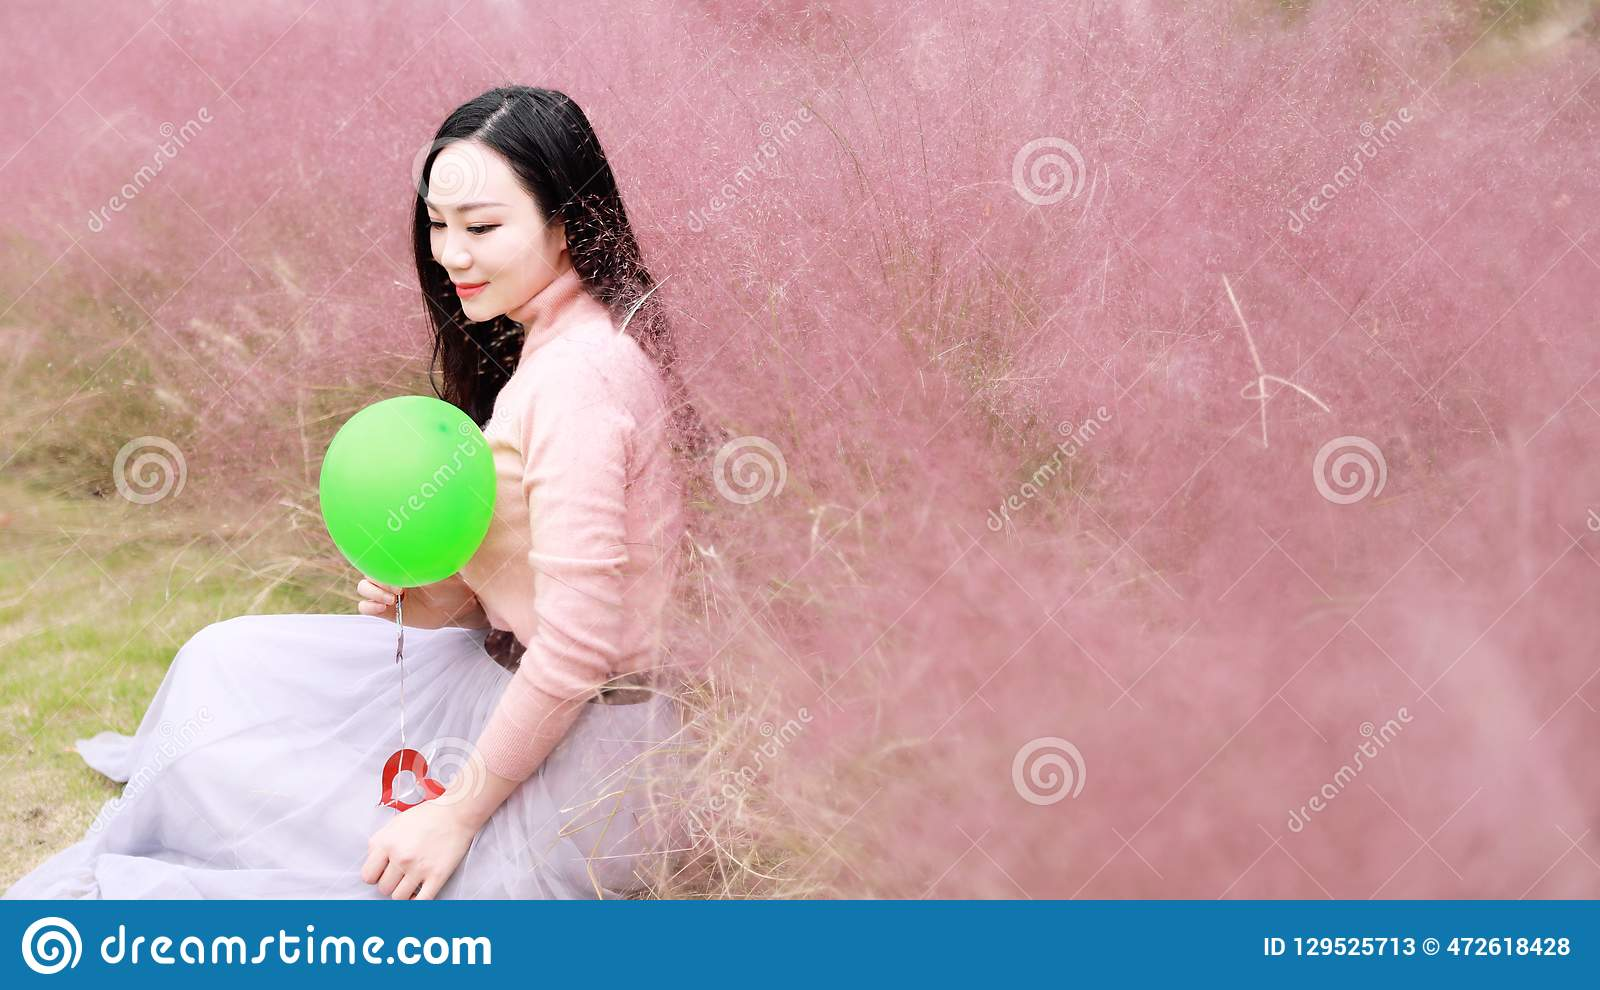 Happy Asian Chinese woman girl feel freedom dream pray flower field fall park grass lawn hope nature read book balloon red love